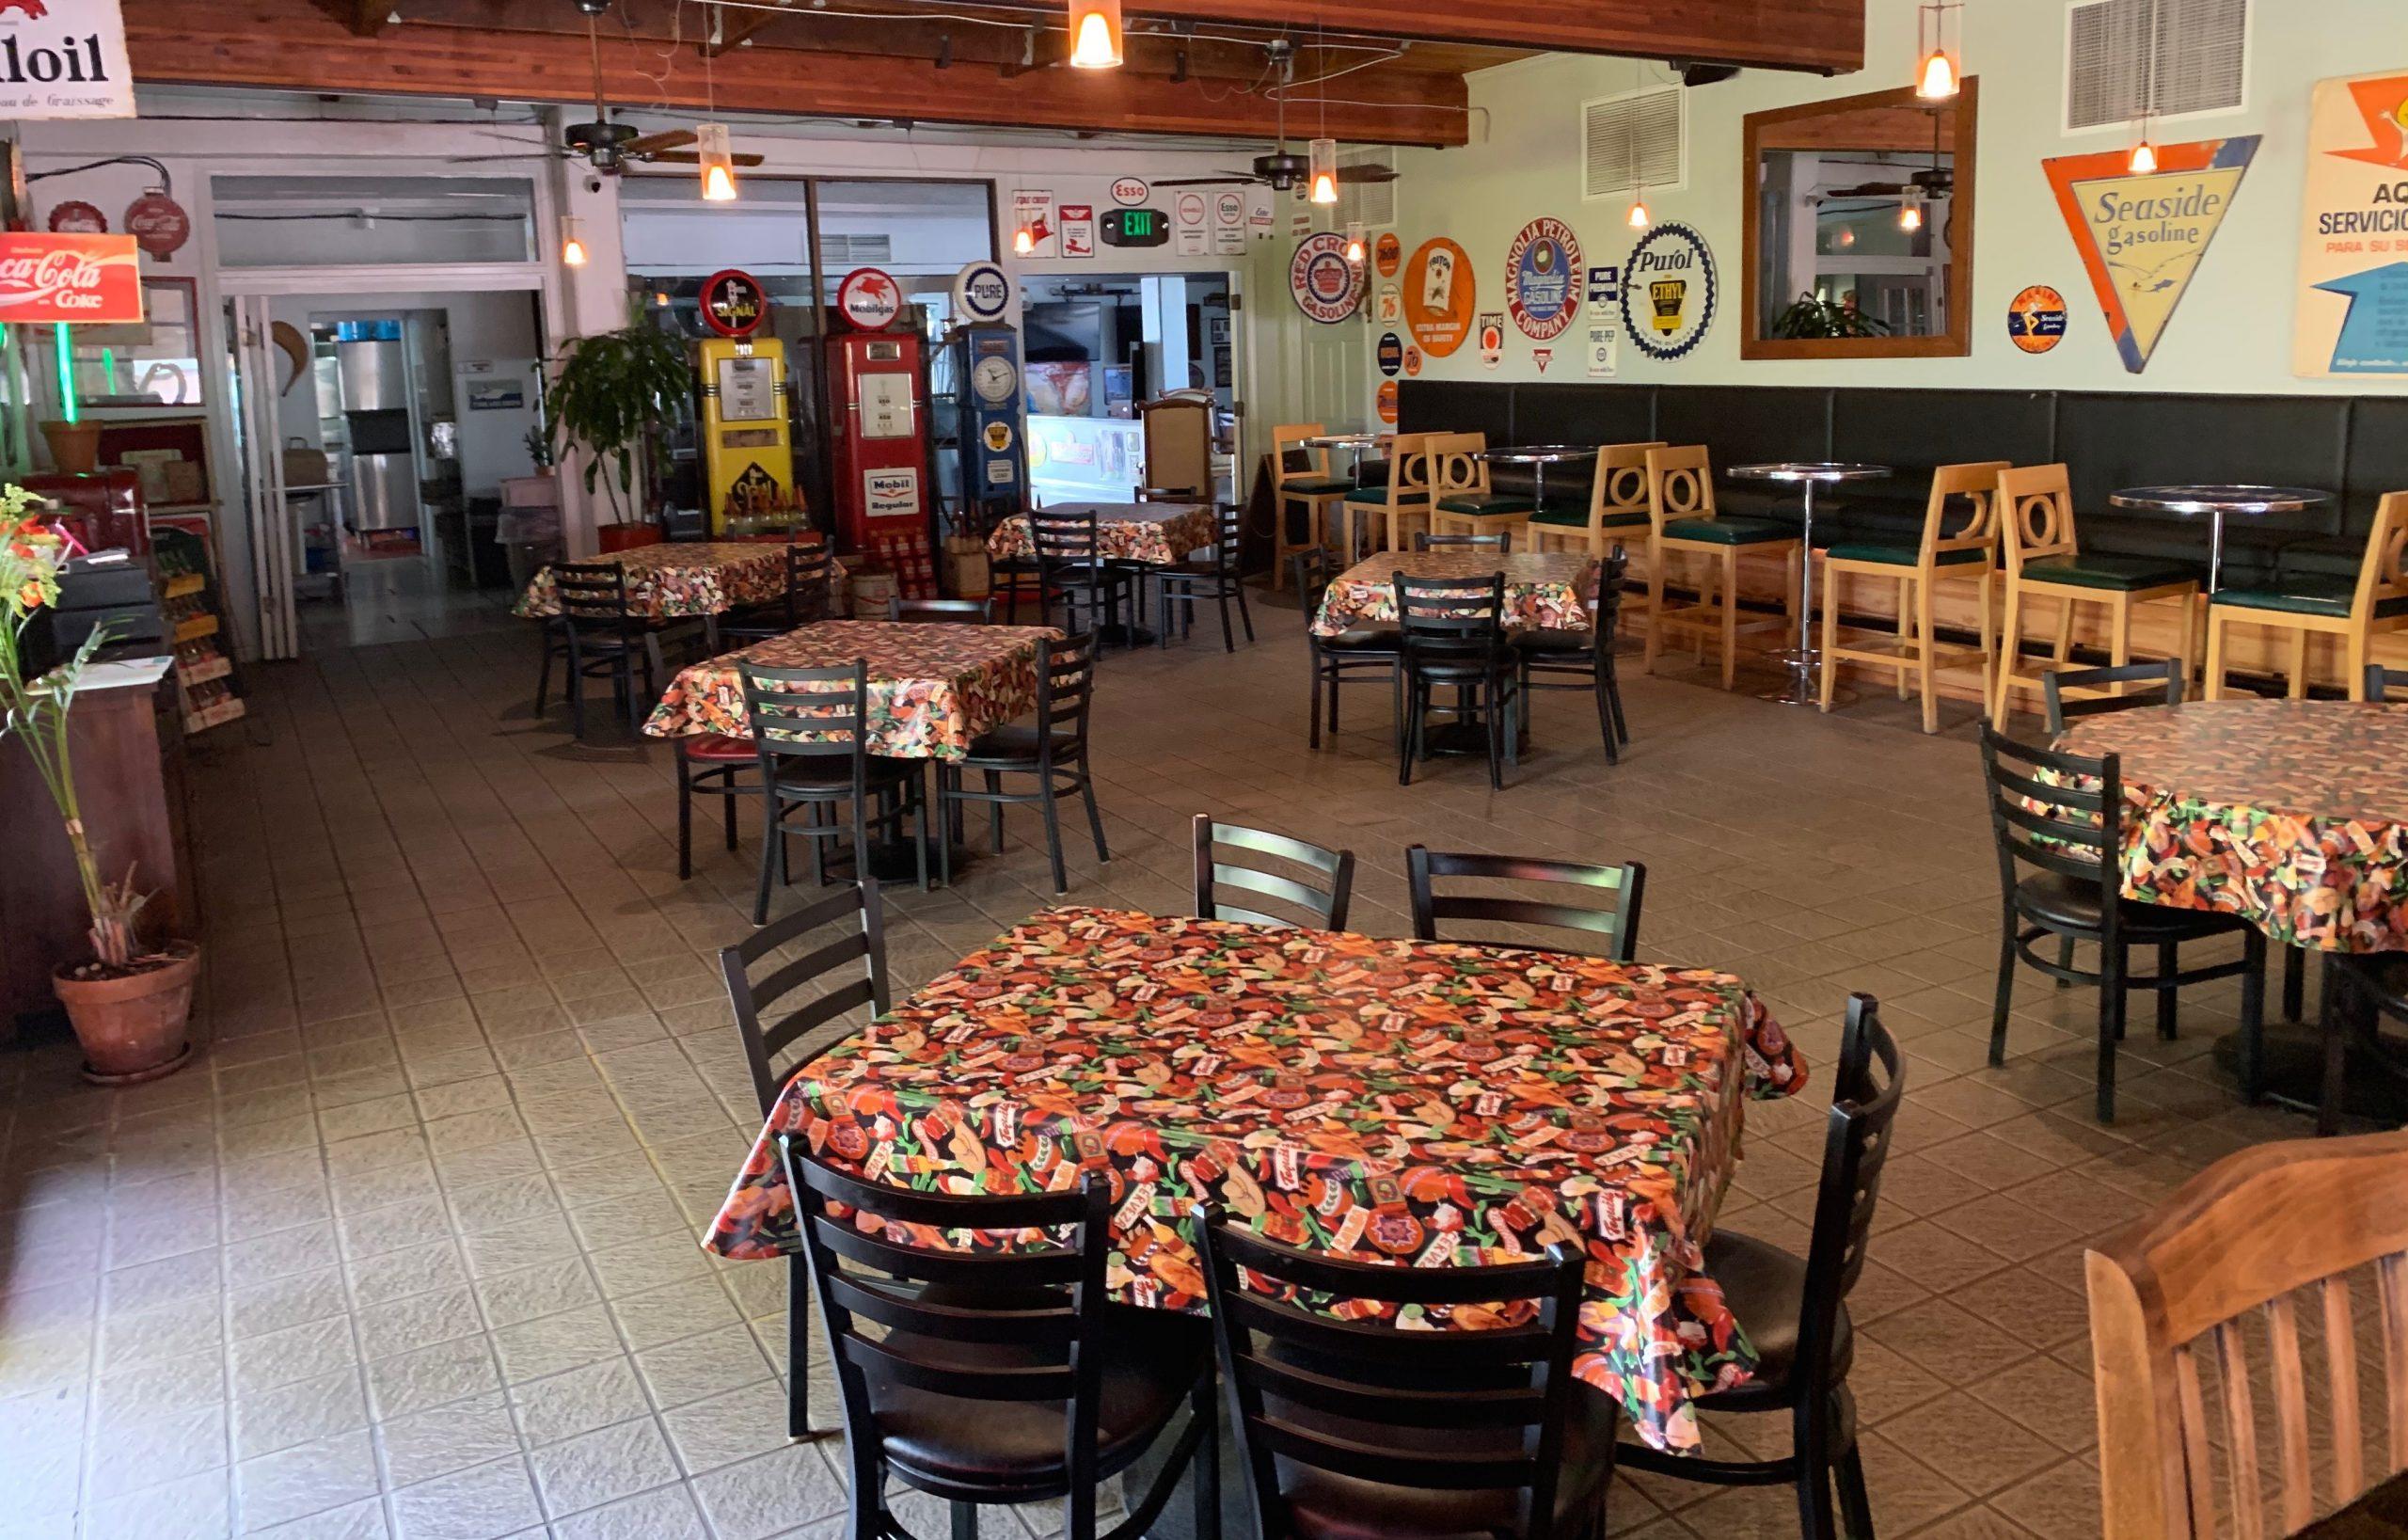 Picture of inside pacho and lefty's